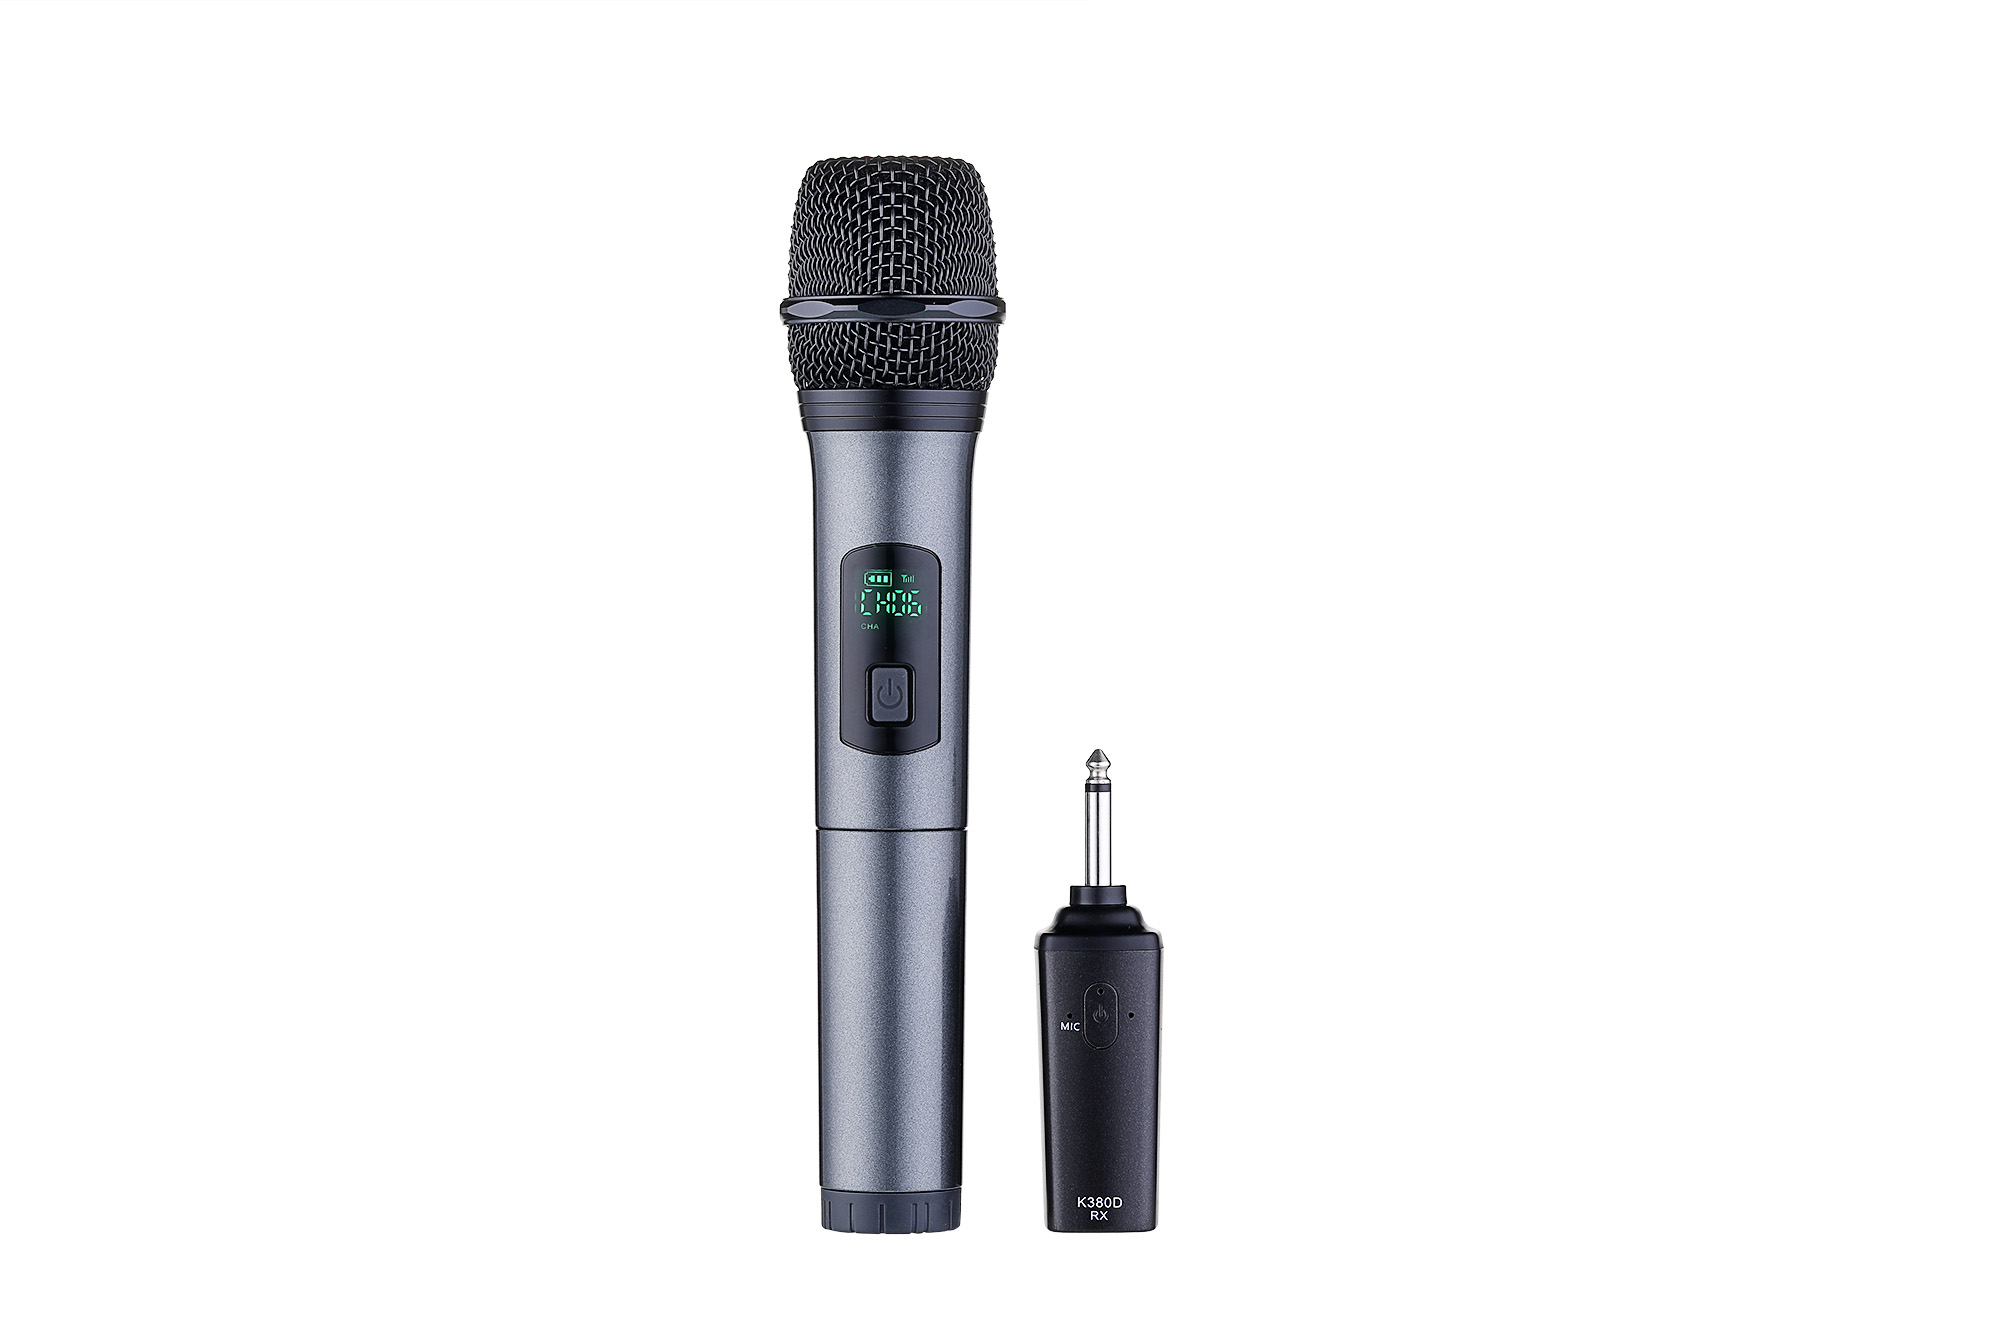 leory k380d 10 channels uhf digital wireless microphone system with one microphone for. Black Bedroom Furniture Sets. Home Design Ideas